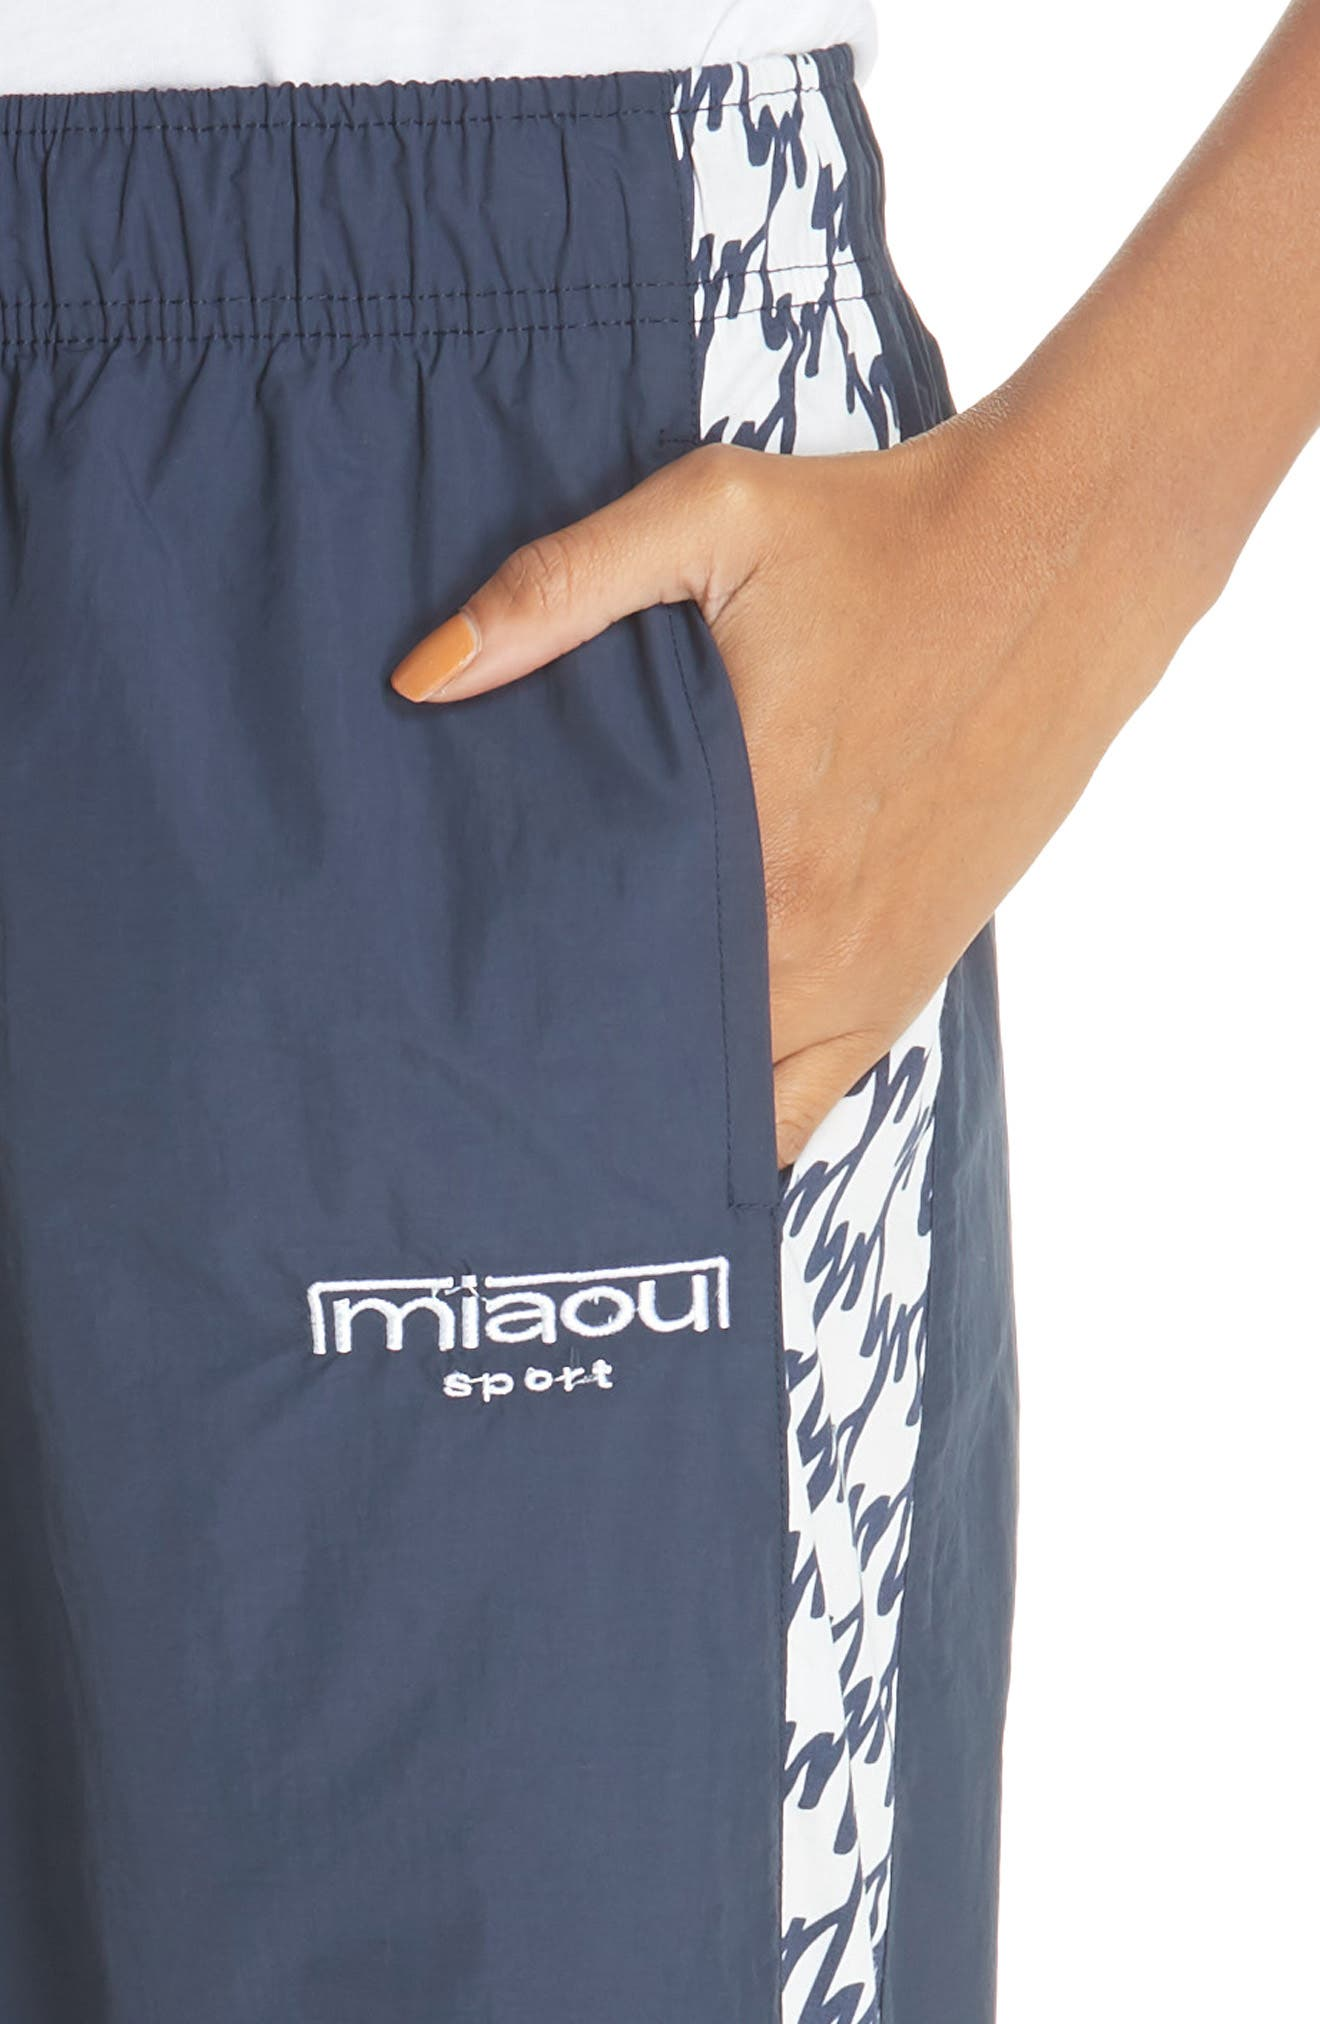 Jogger Pants,                             Alternate thumbnail 4, color,                             NAVY NYLON